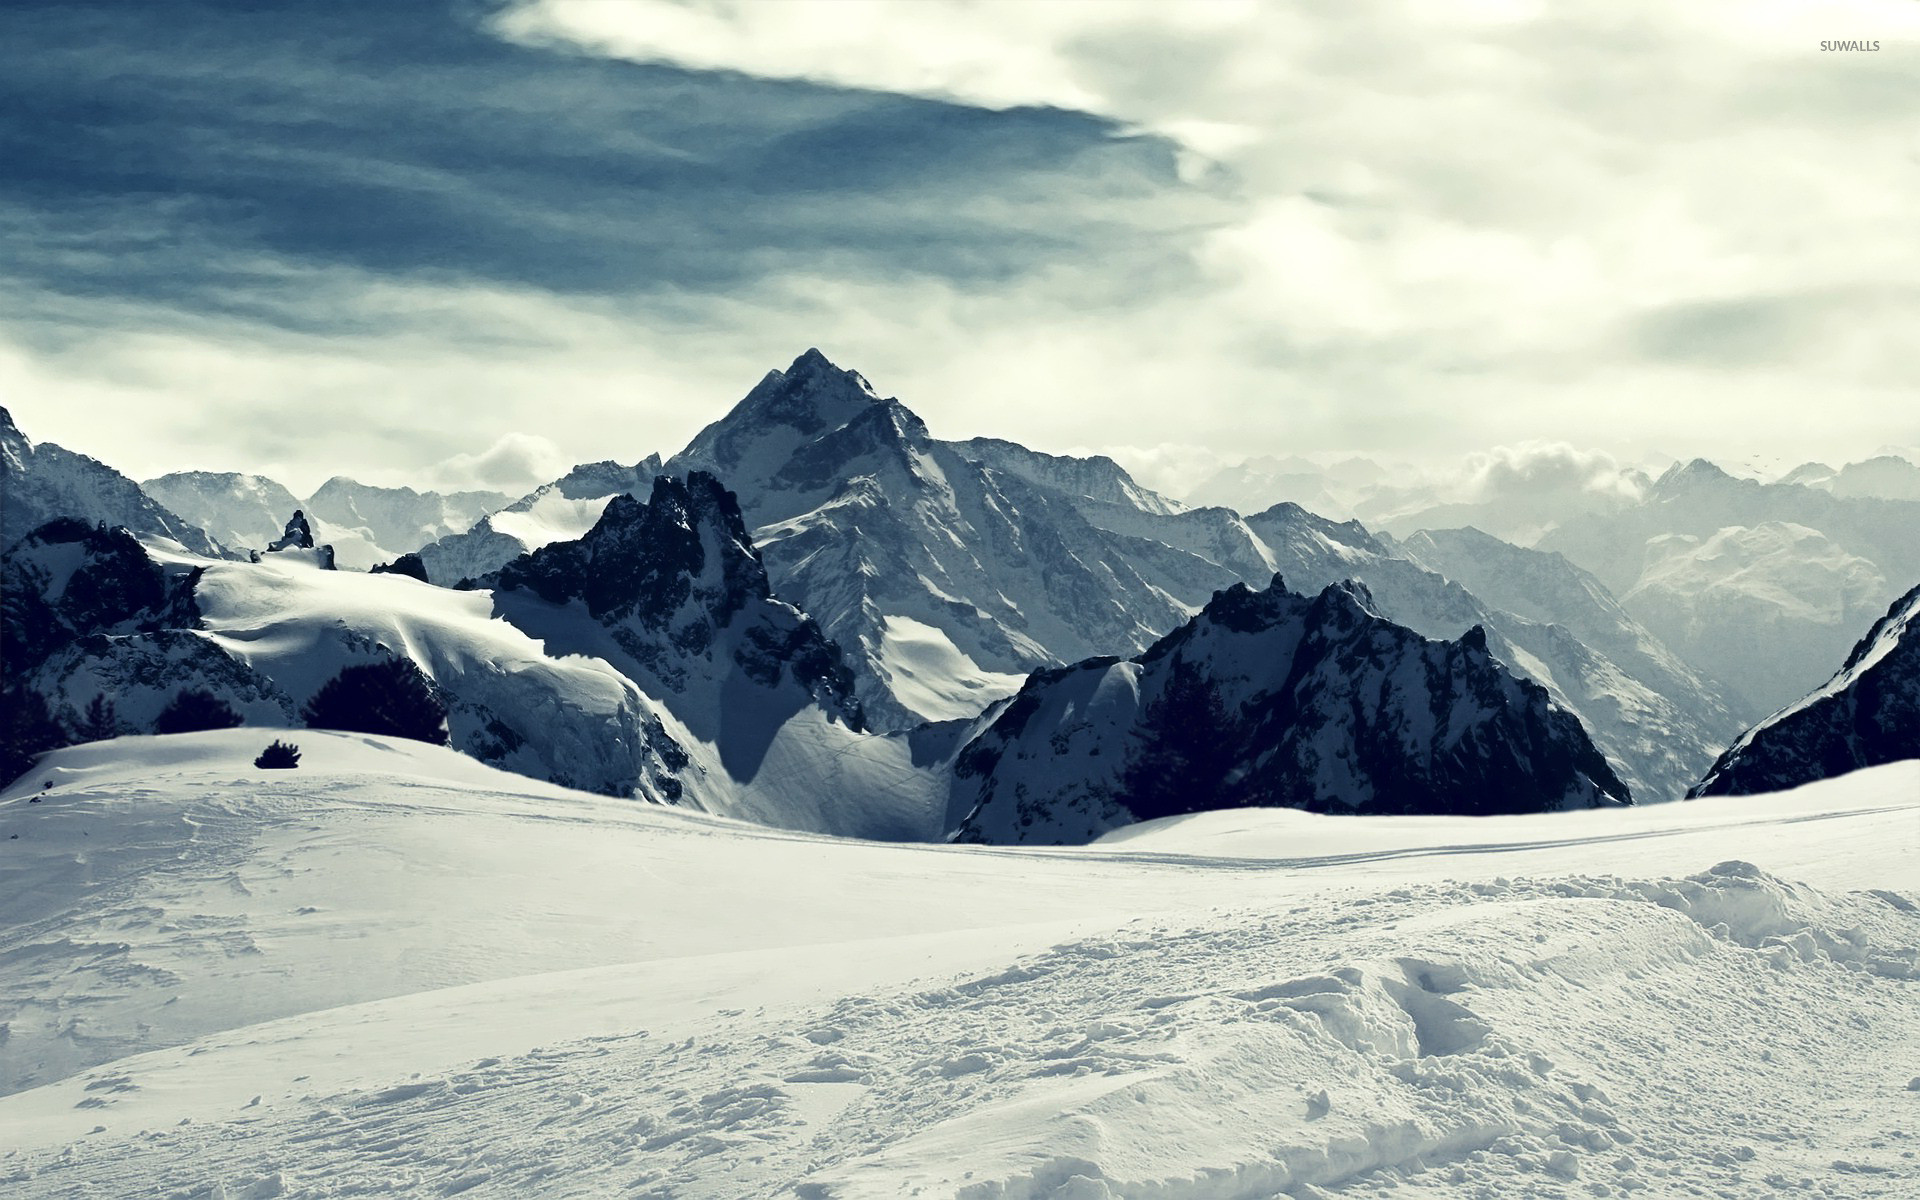 Res: 1920x1200, Snowy mountains wallpaper